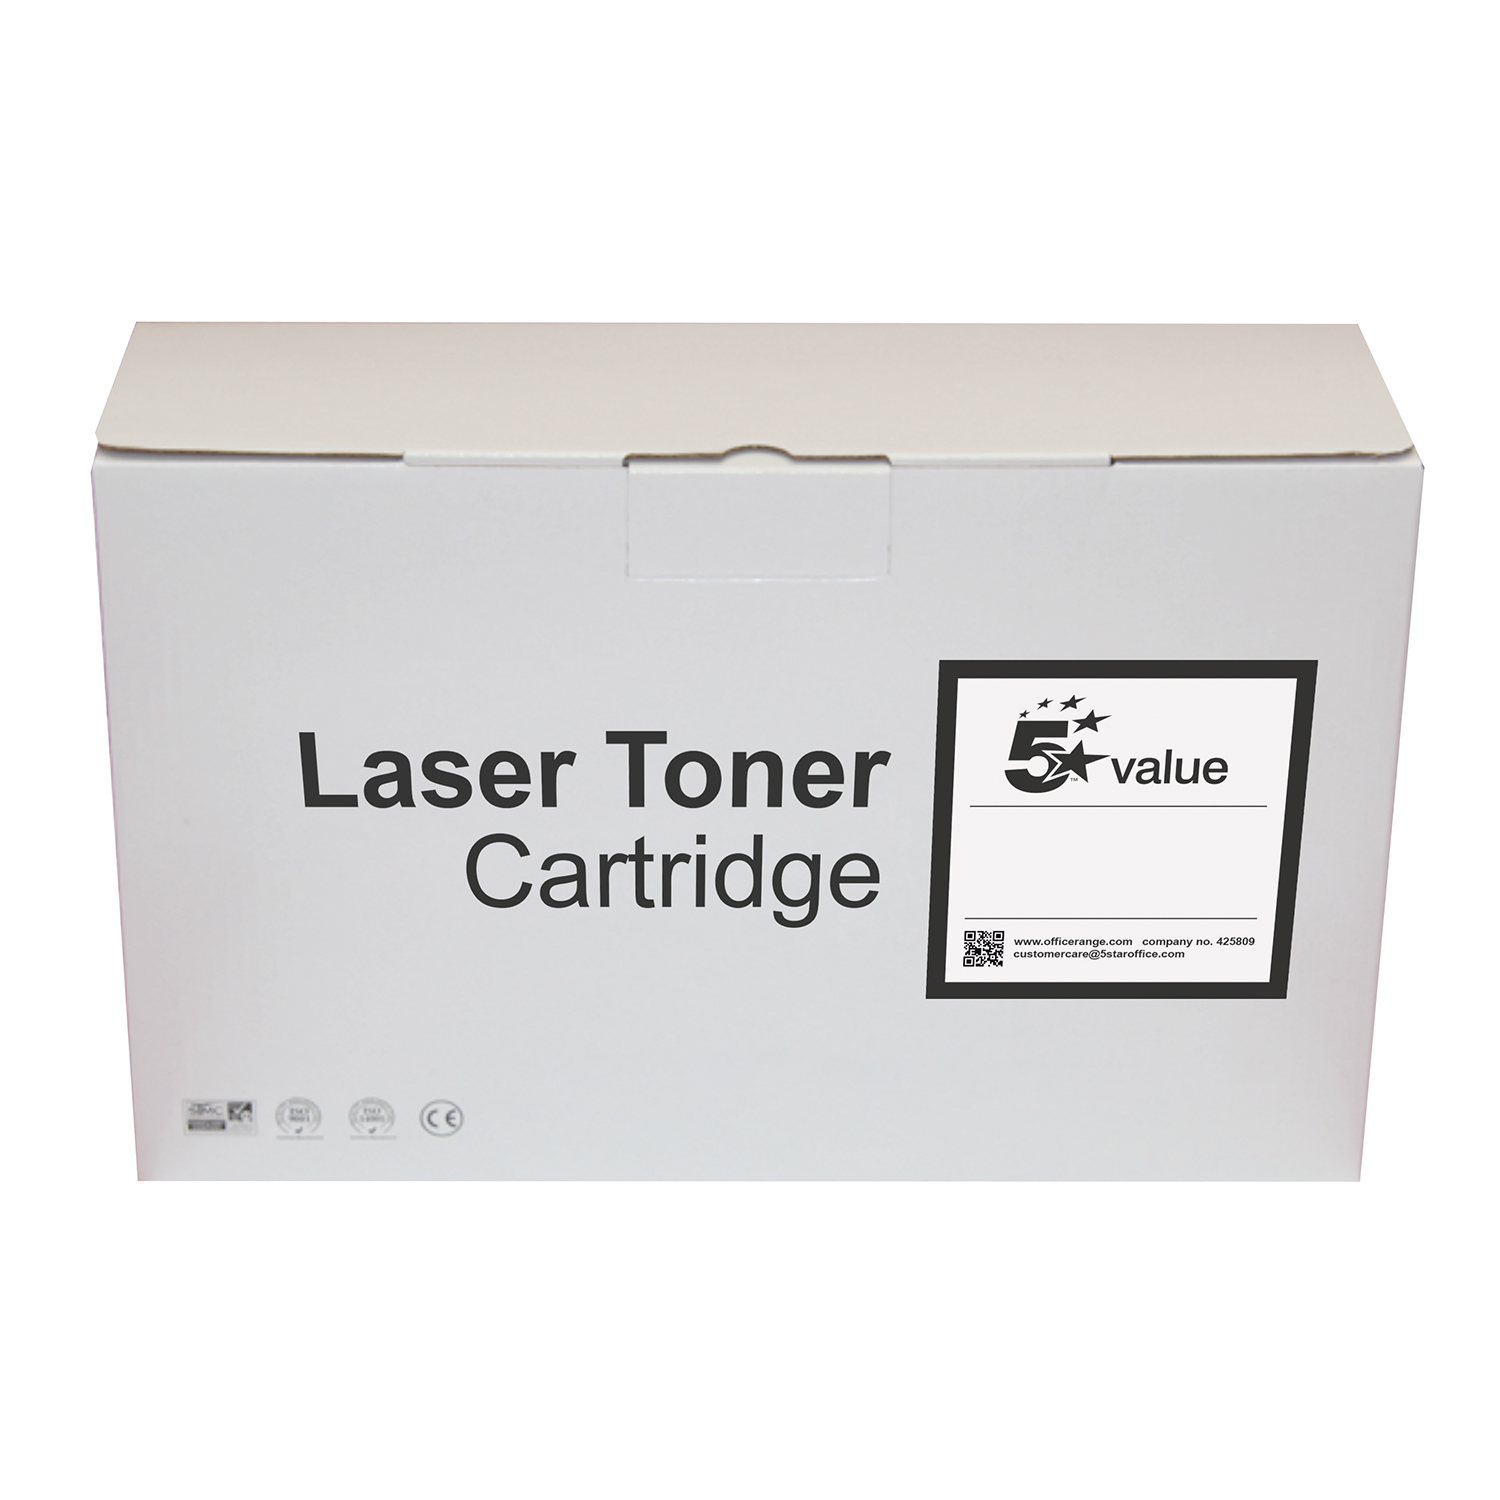 5 Star Value Remanufactured Laser Toner Cartridge 4000pp Black HP No. 305X CE410X Alternative